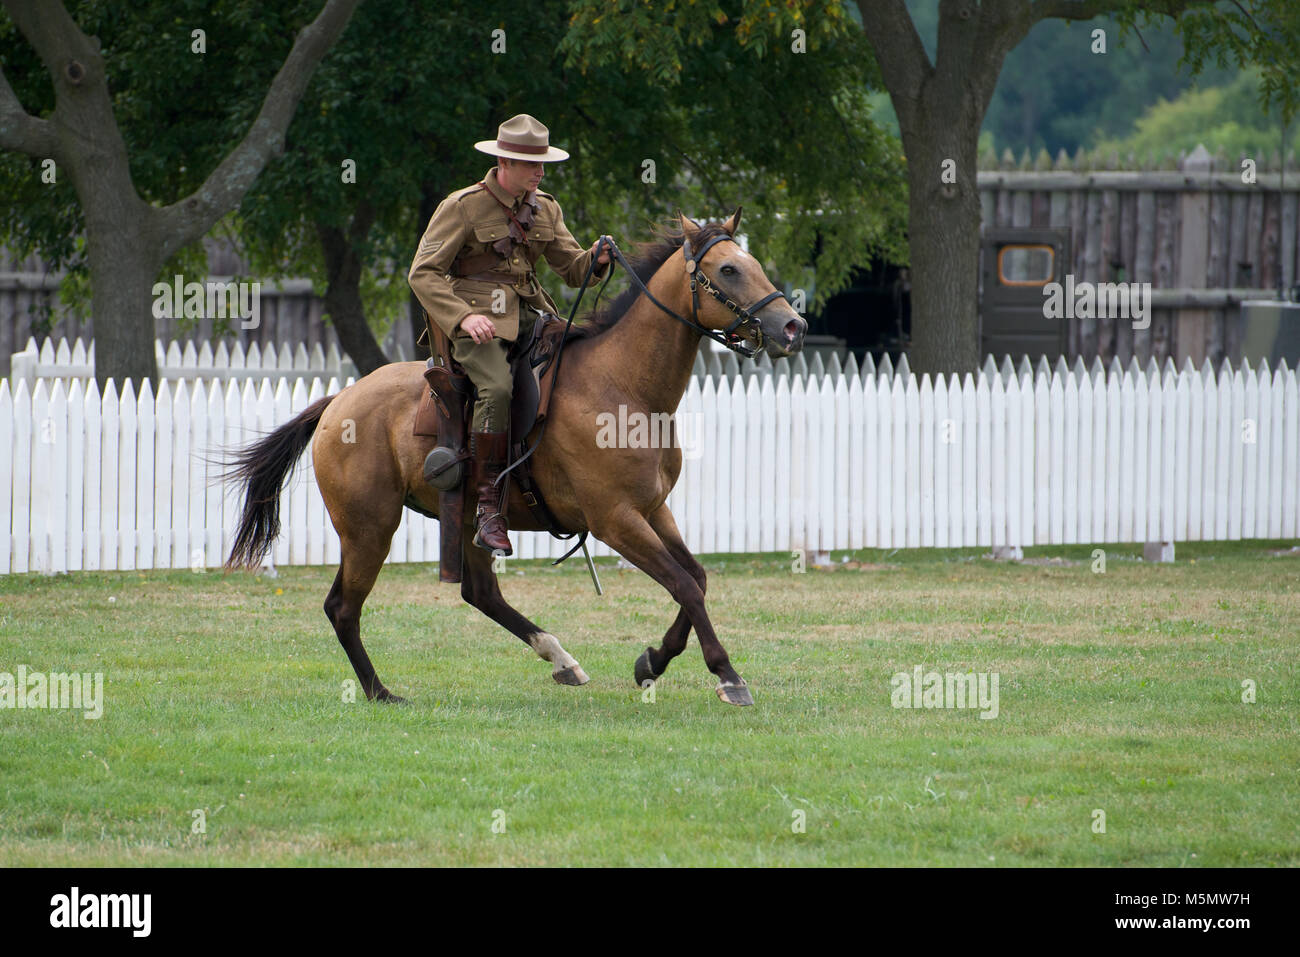 A reanactor dressed in period costume performing a horse riding display at Fort George National Historic Site, Niagara - Stock Image